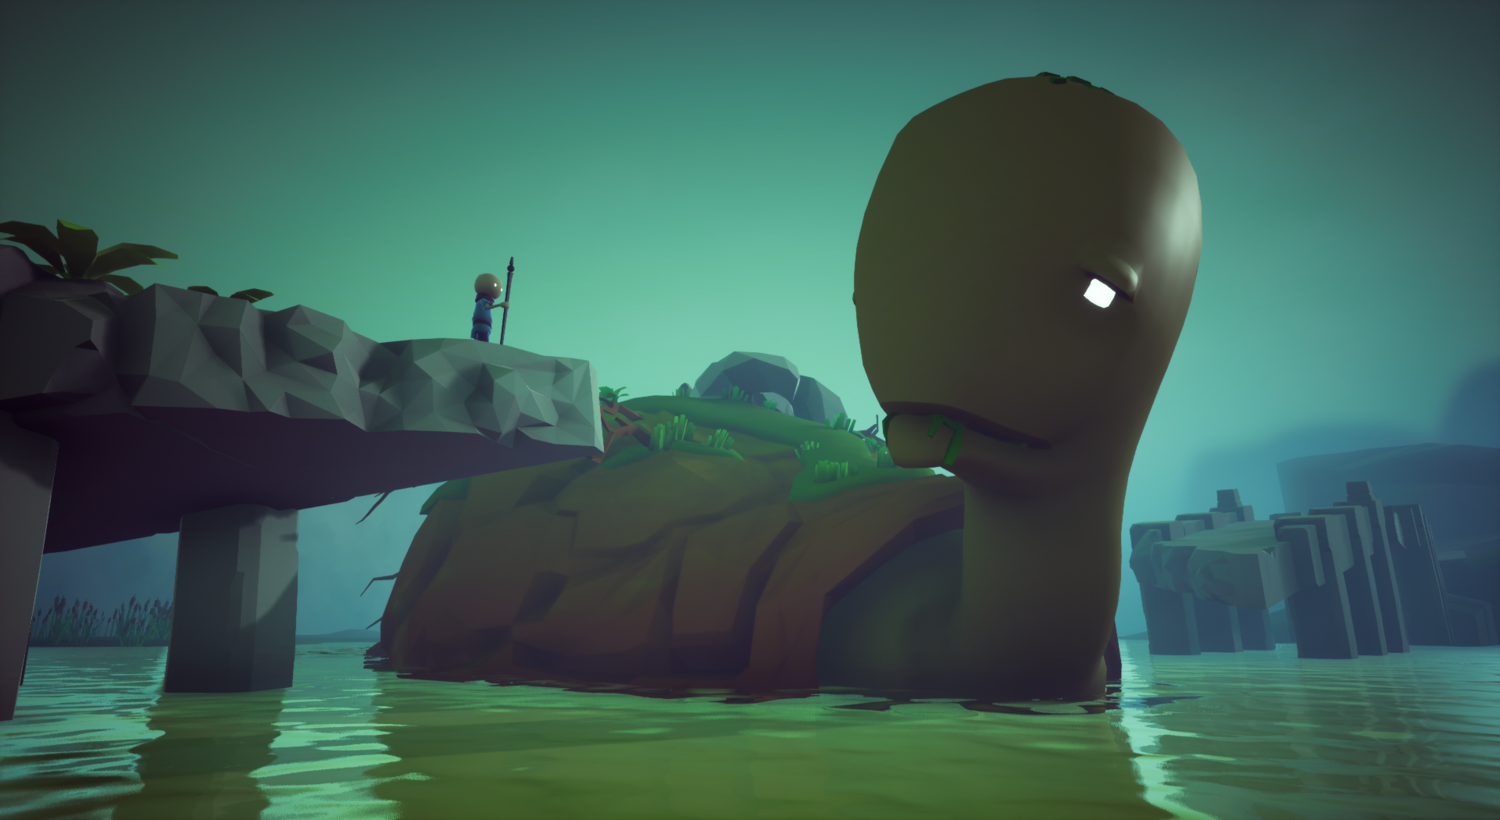 A still from the Omno game. The main character stands on a rocky overhang above a lake. There is an enormous turtle in the water who they appear to be conversing with.